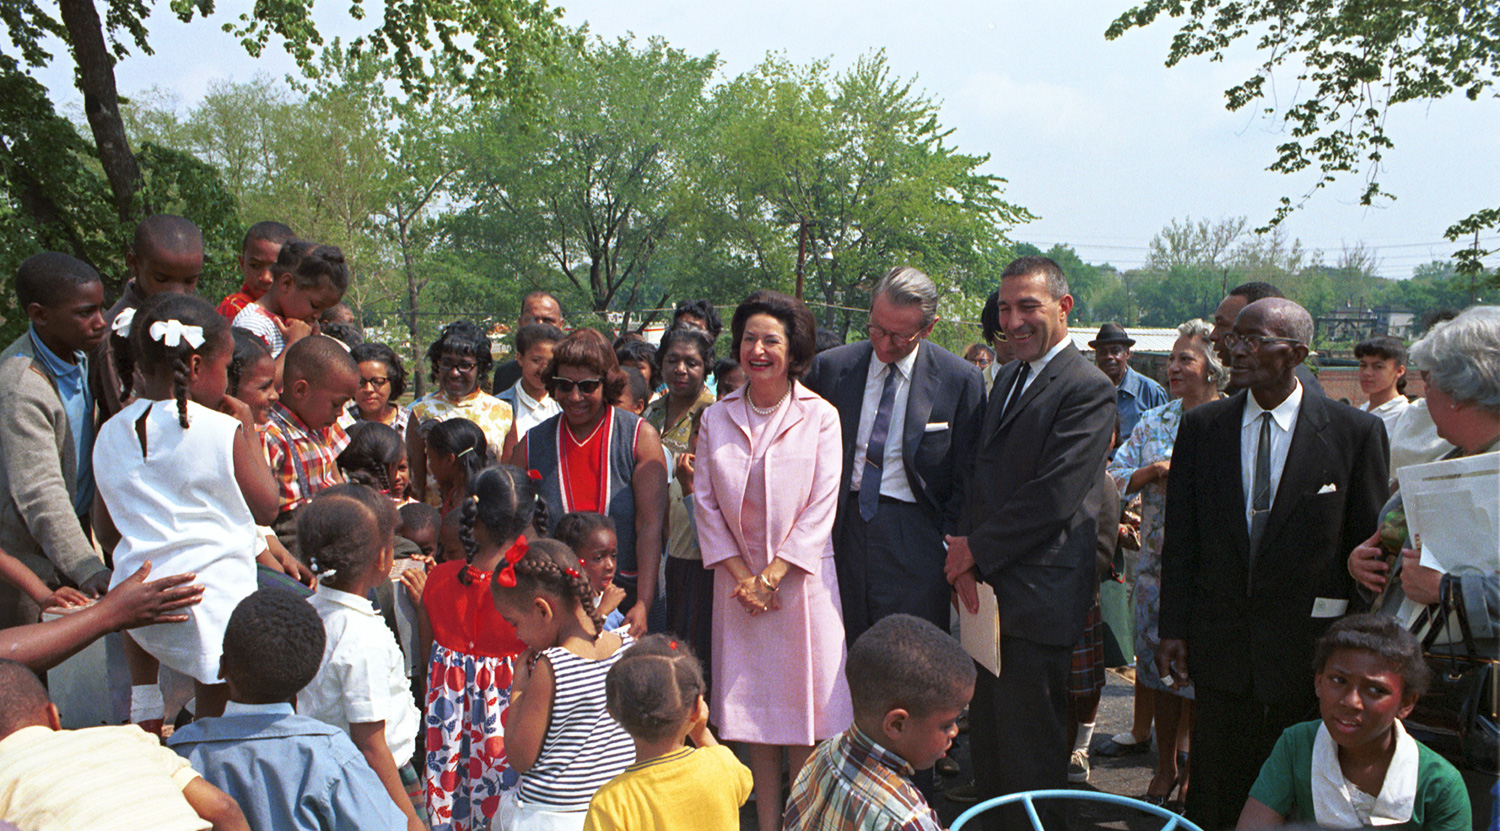 Lady Bird Johnson at the 1966 dedication of the new Watts Branch Park in Northeast Washington, D.C. Photo courtesy LBJ Library.